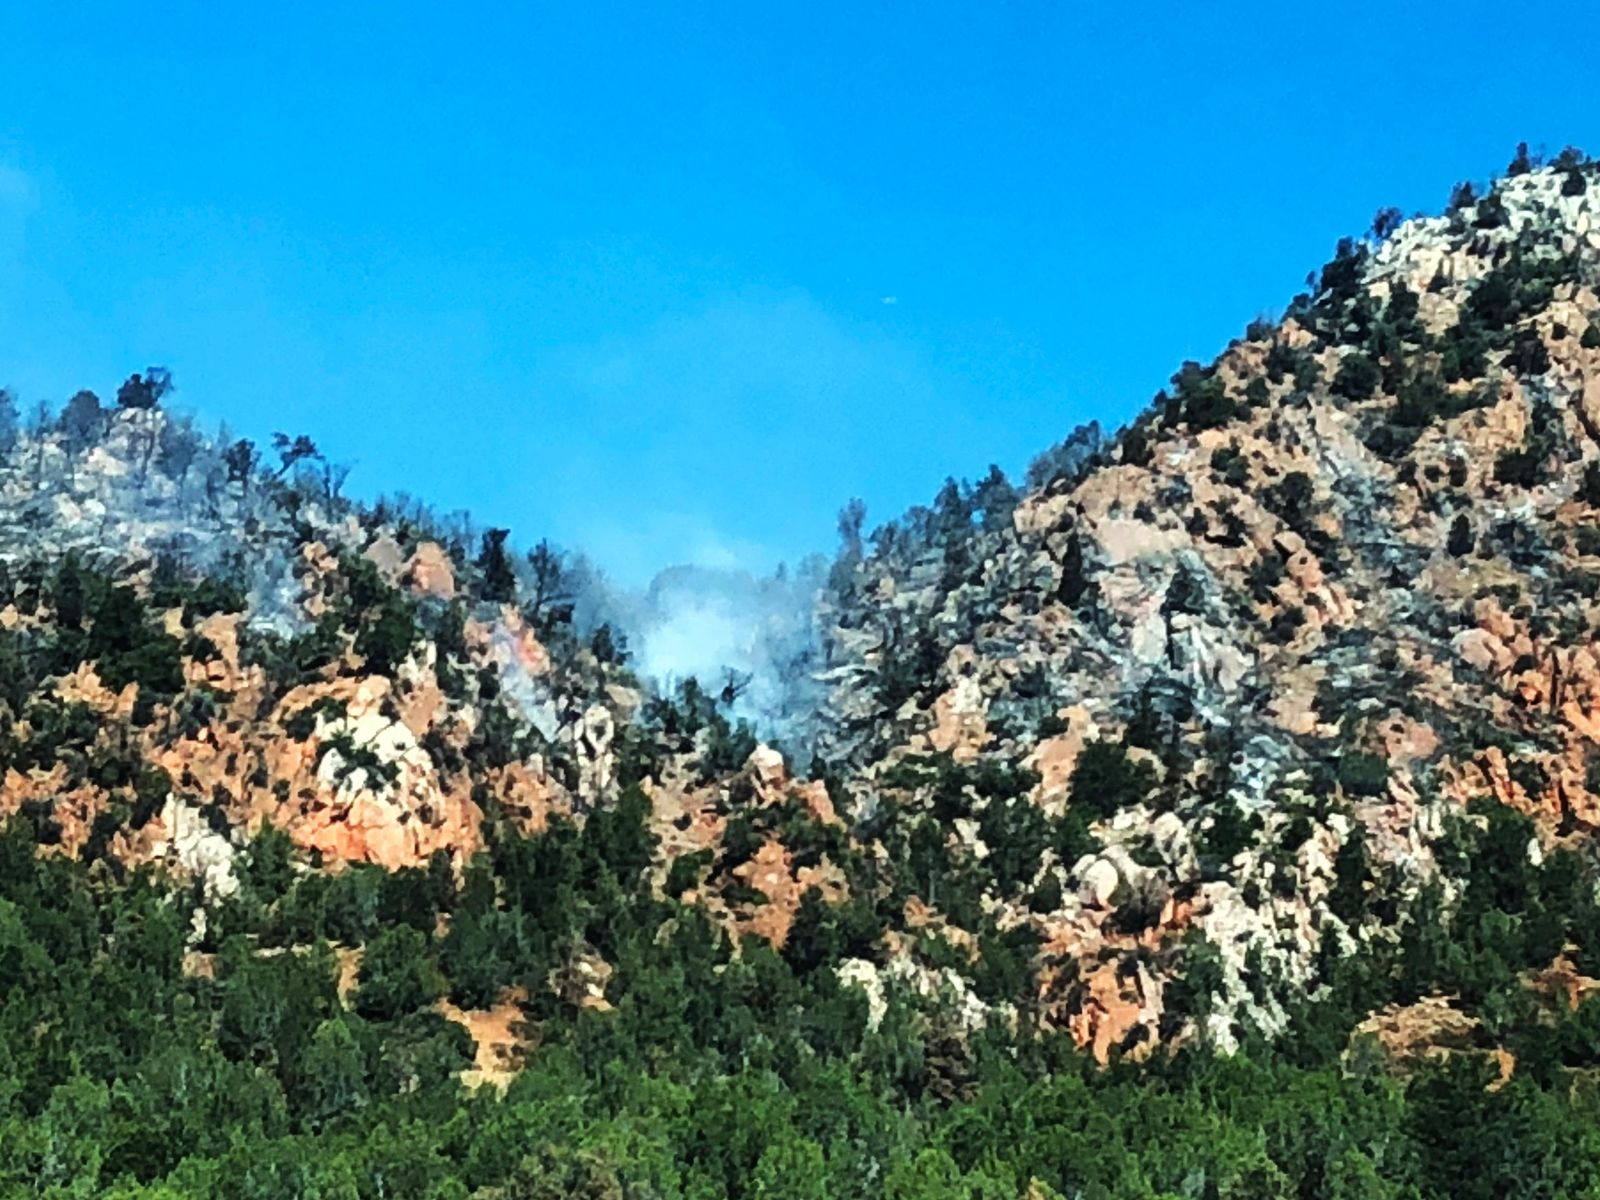 Climate change in the Western U.S. means more intense and frequent wildfires churning out waves of smoke that scientists say will sweep across the continent to affect tens of millions of people and cause a spike in premature deaths. (Photo: RaeAnn Christensen / KUTV)